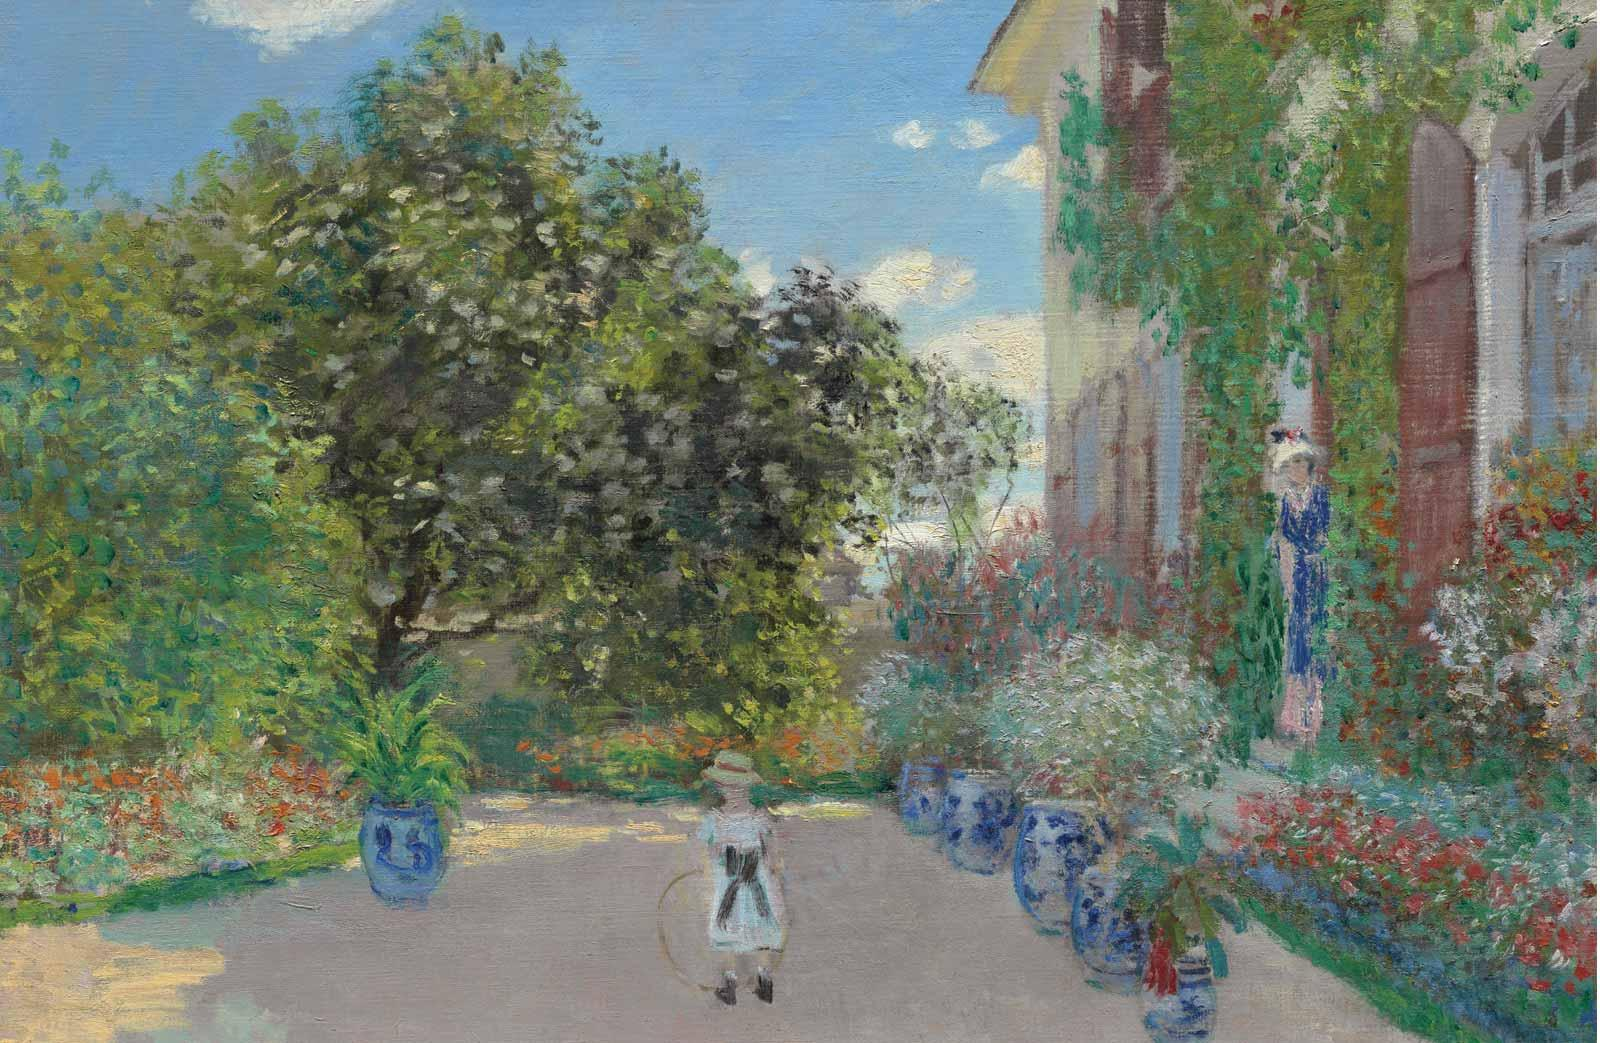 Claude Monet, The Artist's House at Argenteuil, 1873.